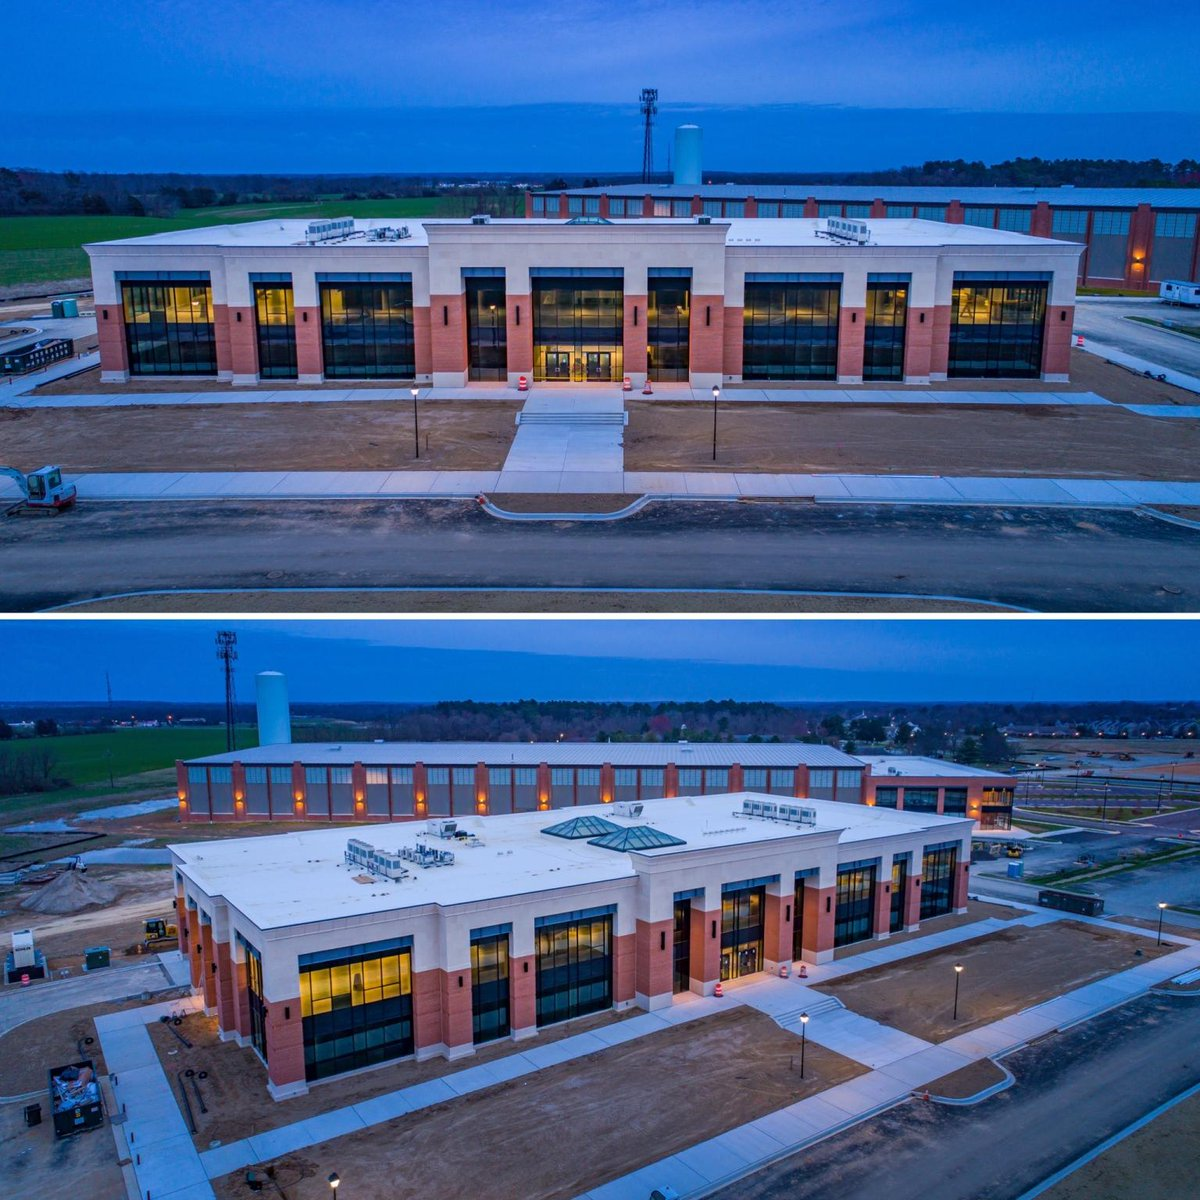 Special thanks to KRM Development Corp. and Shore Studios for these awesome drone shots of the @DixonValve HQ progress!  #architecture #design #chestertown #dixonvalve #industrialdesign #corporatedesign